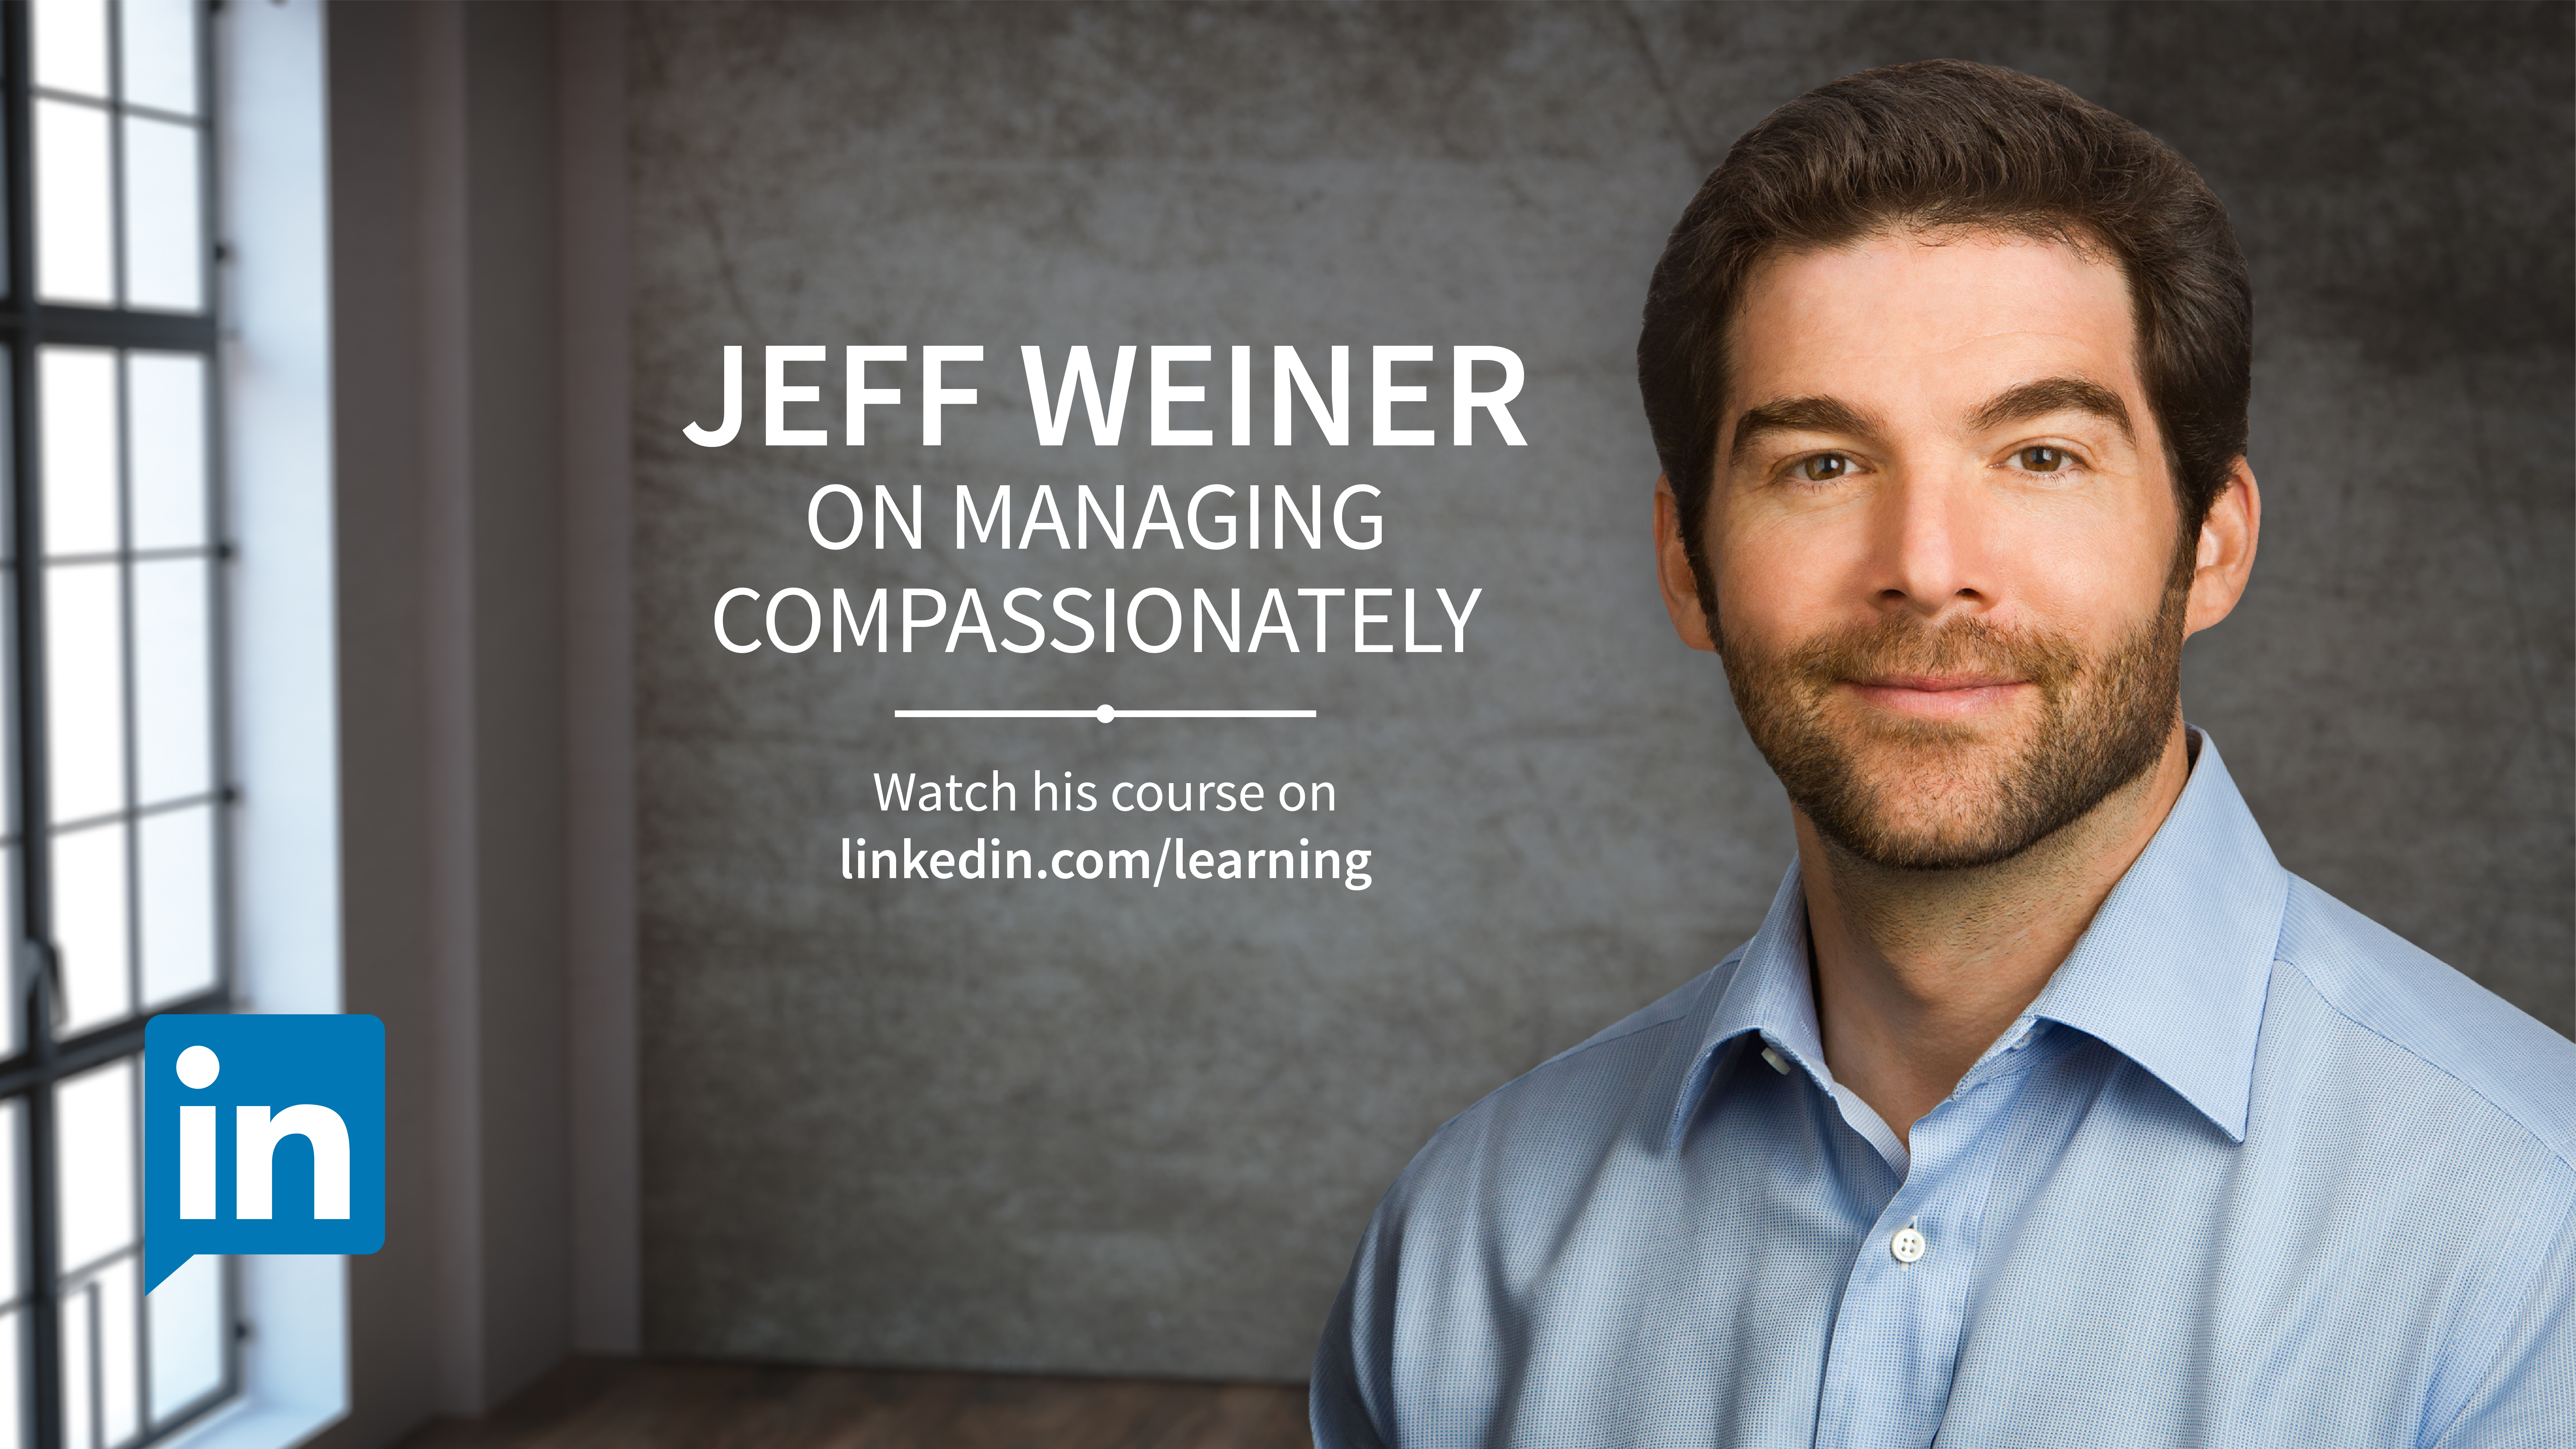 ?critical analysis of jeff weiner ñ ceo of linkedin essay View dimang chhol's profile on linkedin, the world's largest professional community dimang has 2 jobs listed on their profile see the complete profile on linkedin and discover dimang's connections and jobs at similar companies.